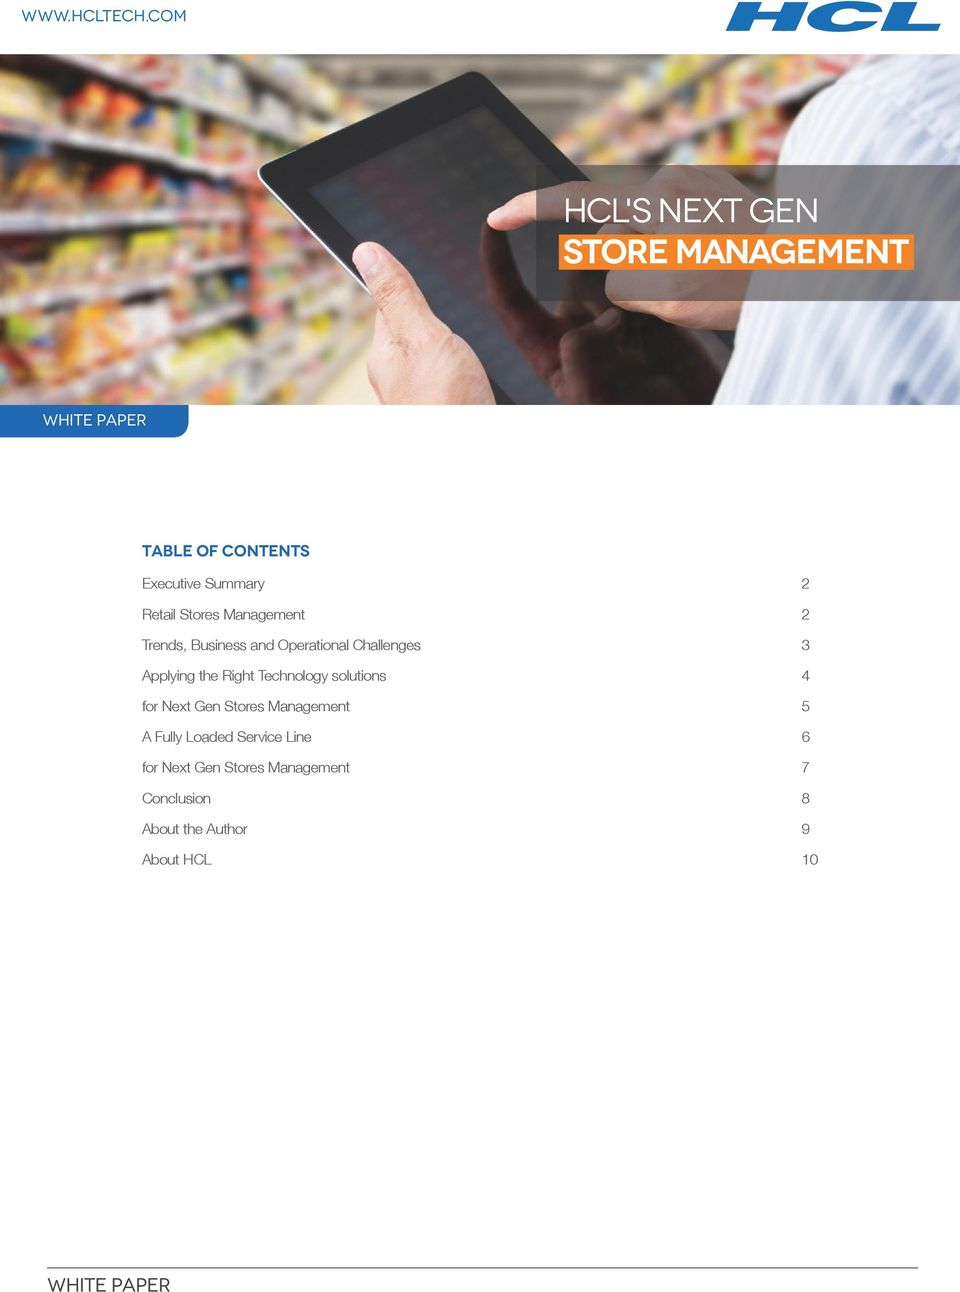 Retail Stores Management 2 Trends, Business and Operational Challenges 3 Applying the Right